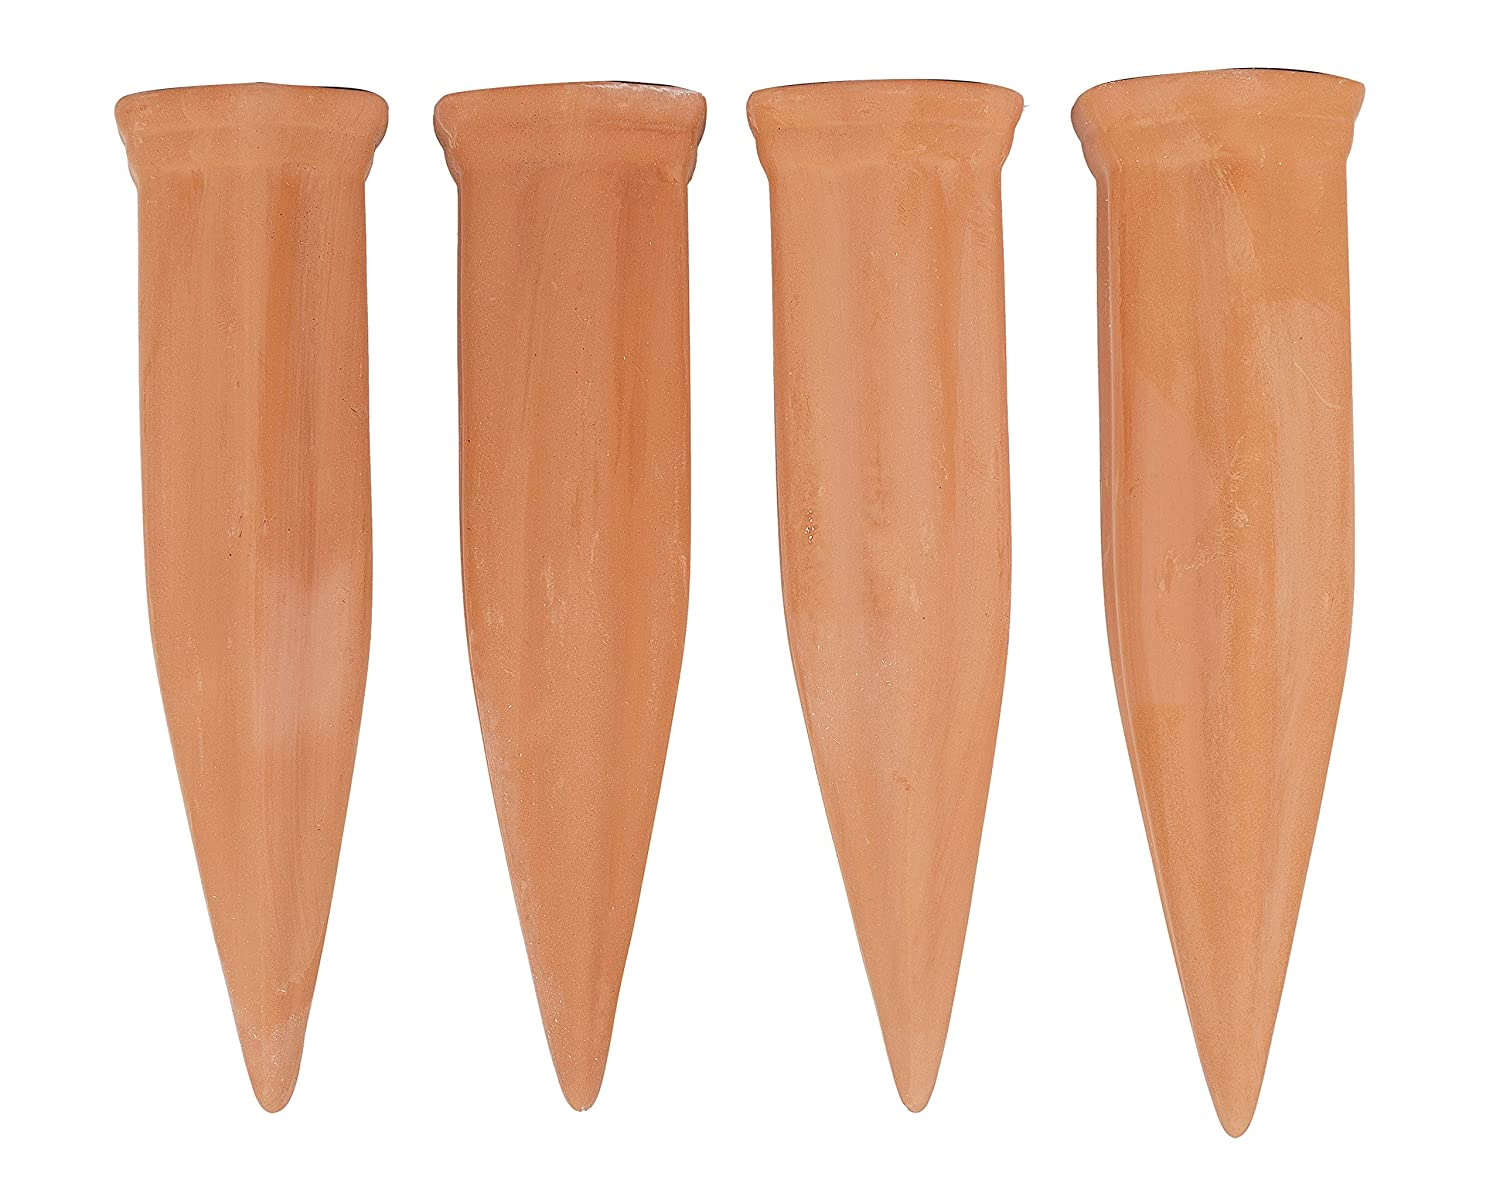 Set of 8 Stakes Garden Wealers Clay Self- Plant Watering Device Irrigation System Spikes Automatic Portable Ceramic Terracotta Water Bottle Stakes for House Plants Outdoor Indoor